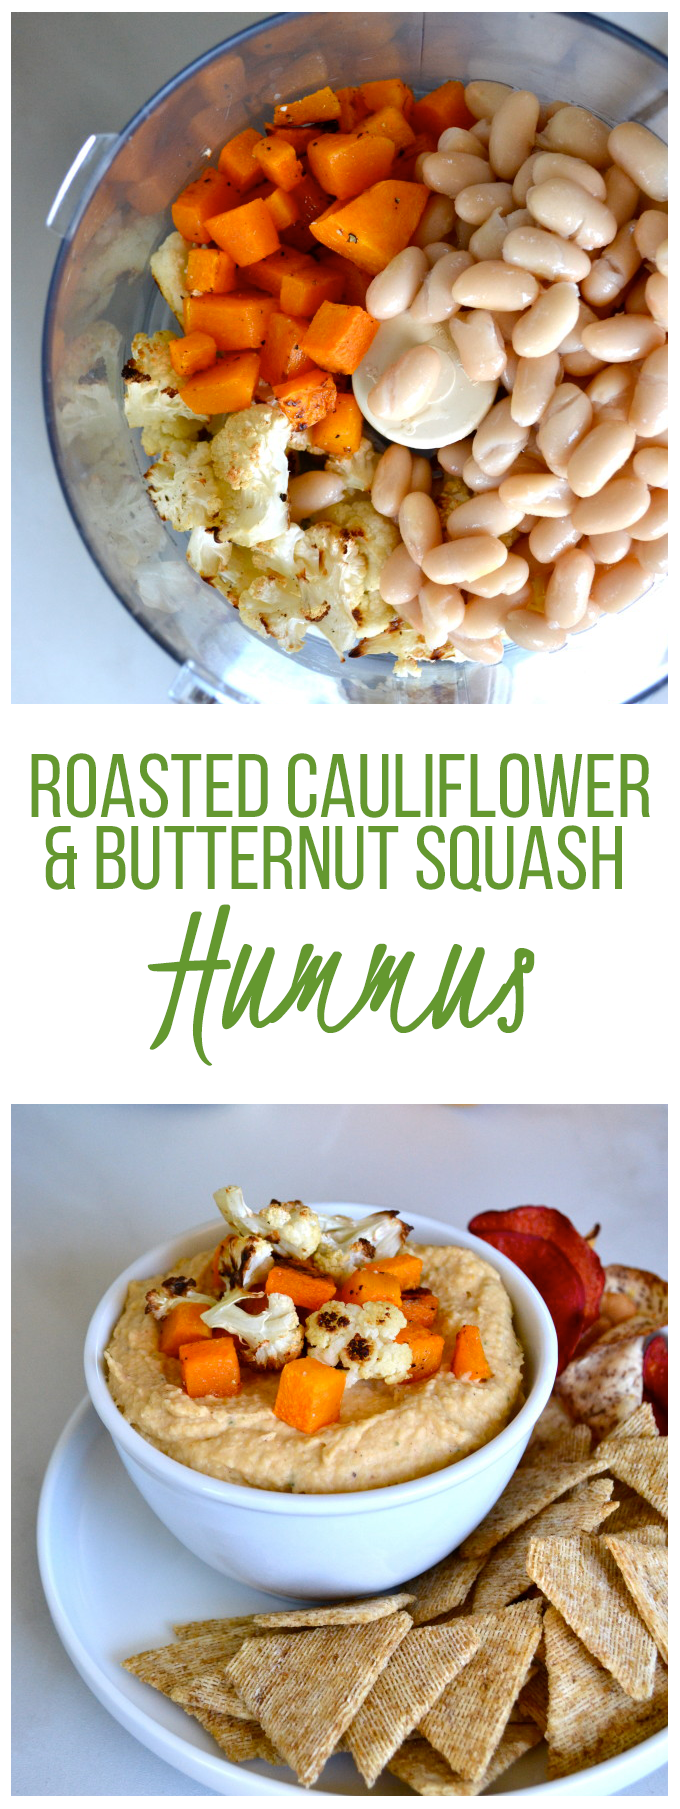 Roasted Cauliflower and Butternut Squash Hummus - a healthy and ...